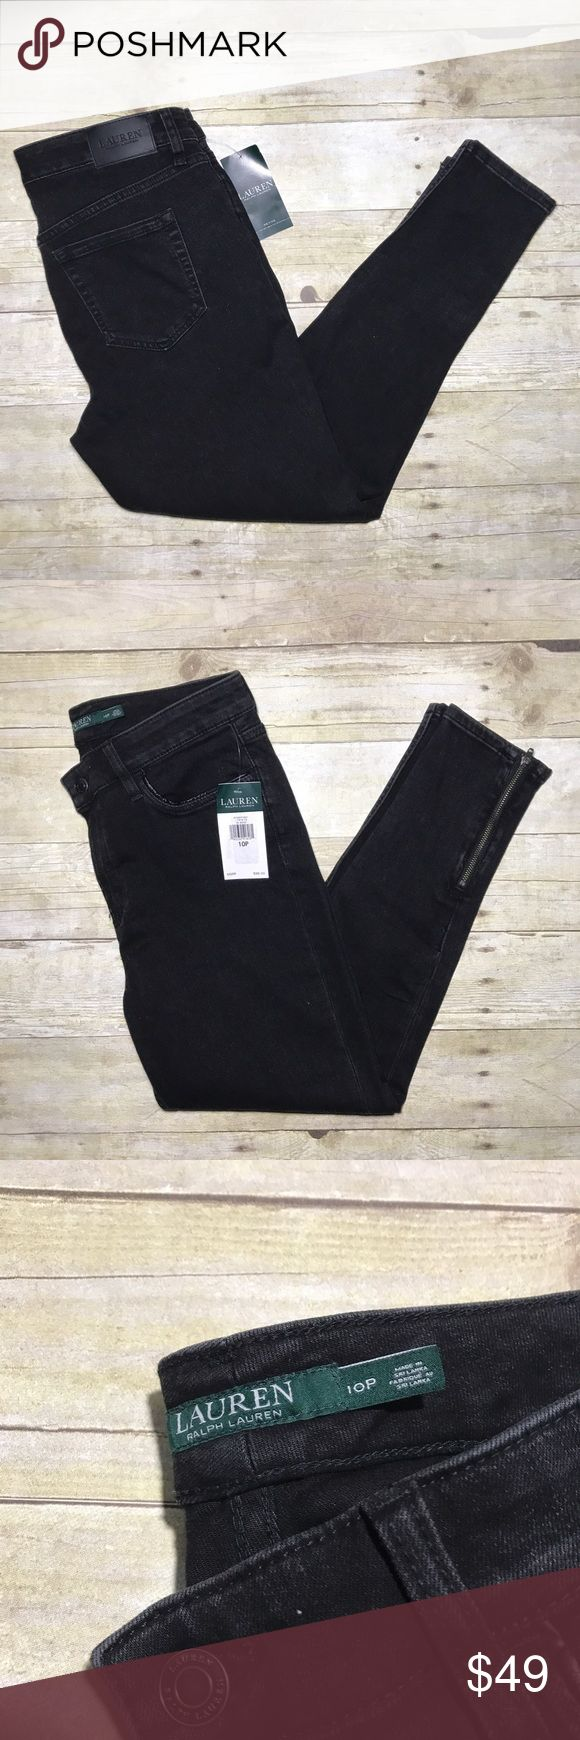 Brand new with Tag Ralph Lauren Petite Skinny Jean Brand New Petite, Dark Indigo Skinny Jeans. Size 10P, Inseam: 24. Have zip up cuffs. Very nice! Lauren Ralph Lauren Jeans Skinny